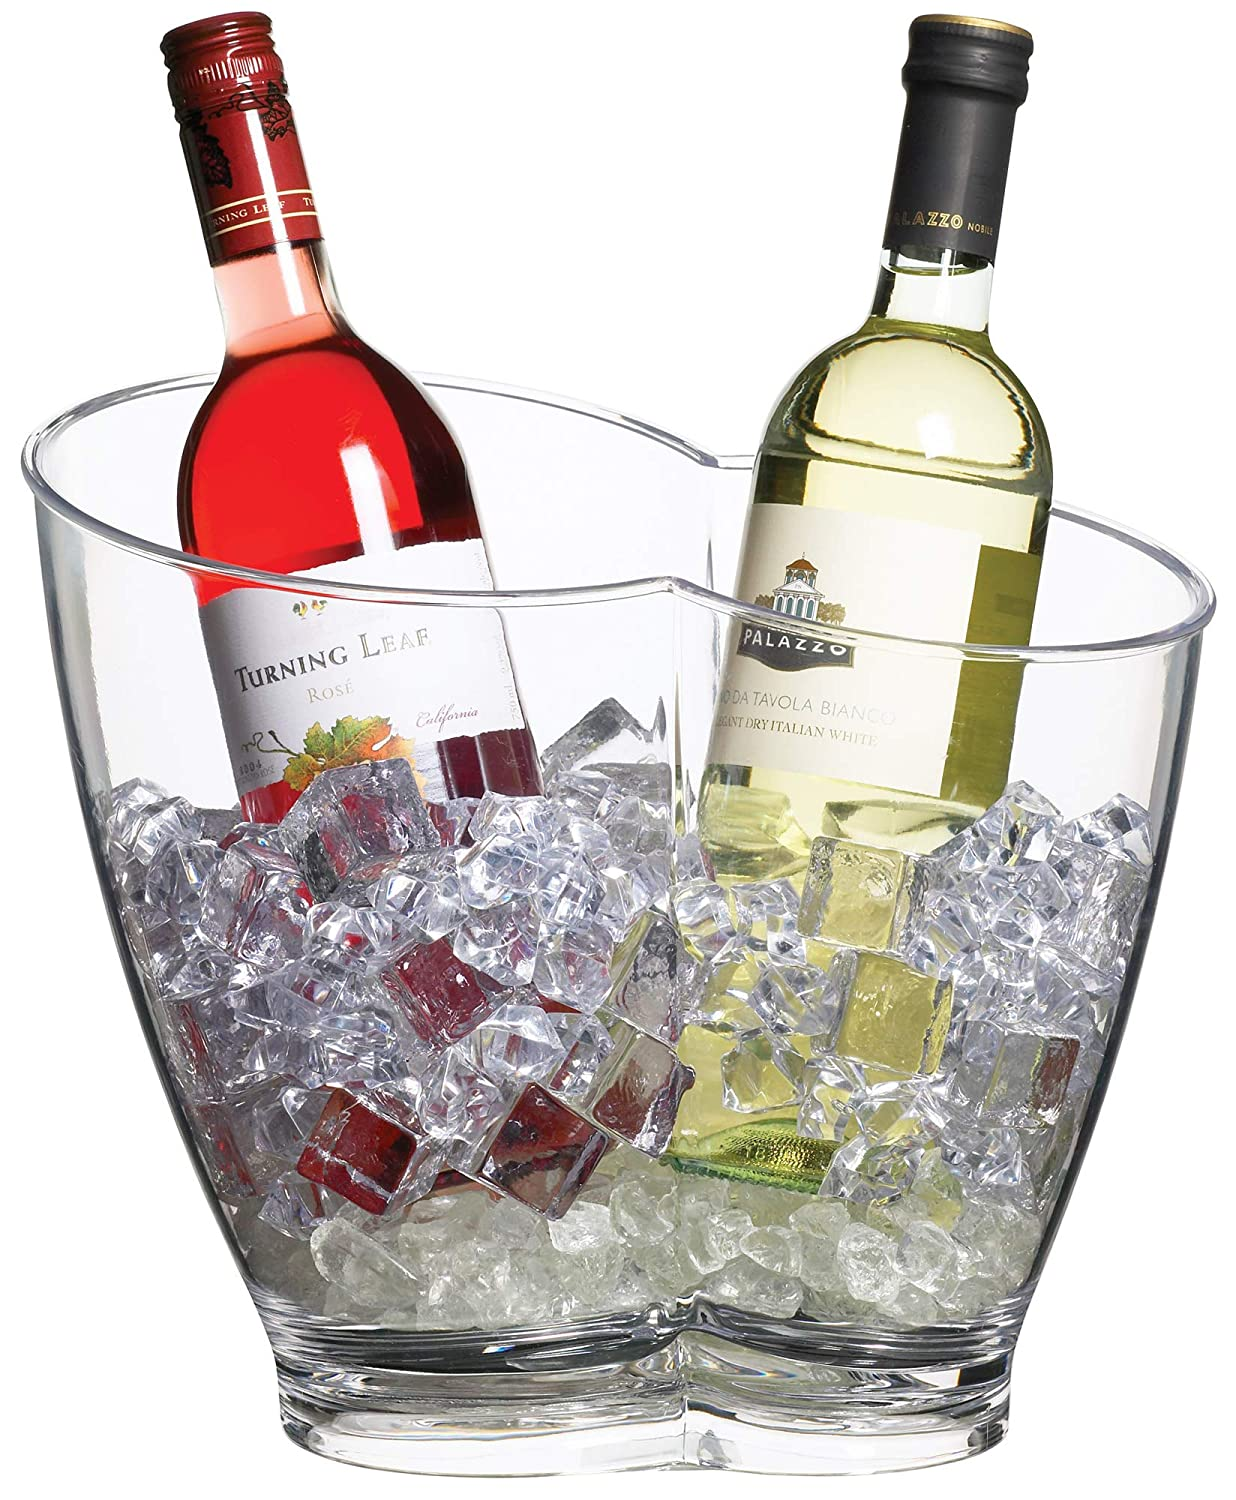 KitchenCraft BarCraft Wine Cooler Bucket, Plastic, 16 litres-Double-Sided Design, Acrylic Kitchen Craft KCBCPAILDBL